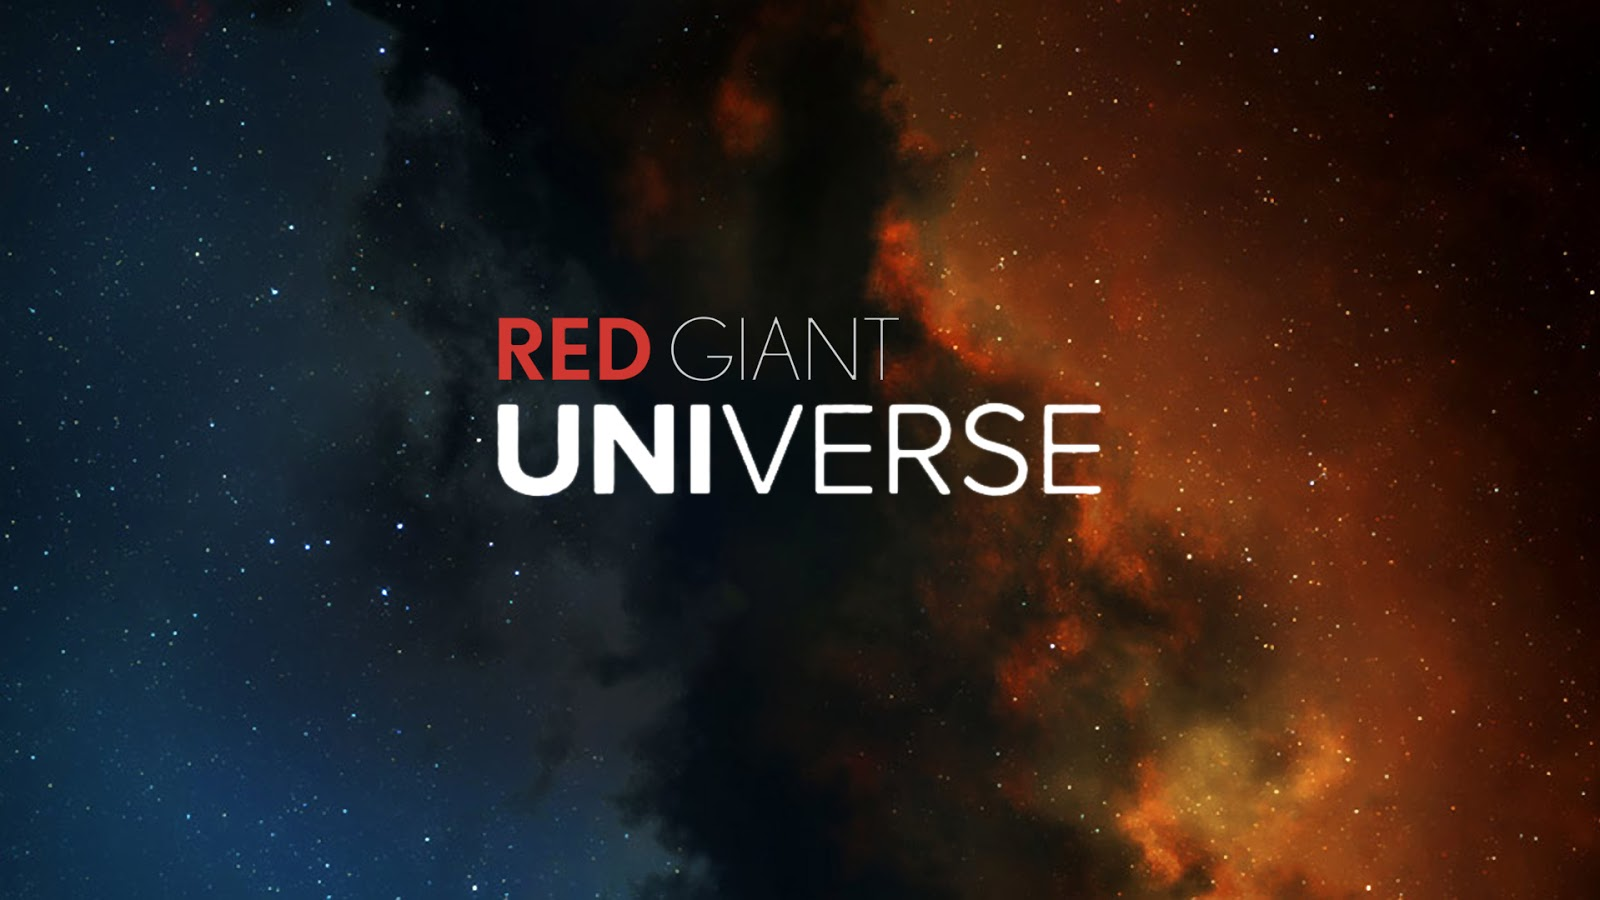 red giant universe mac